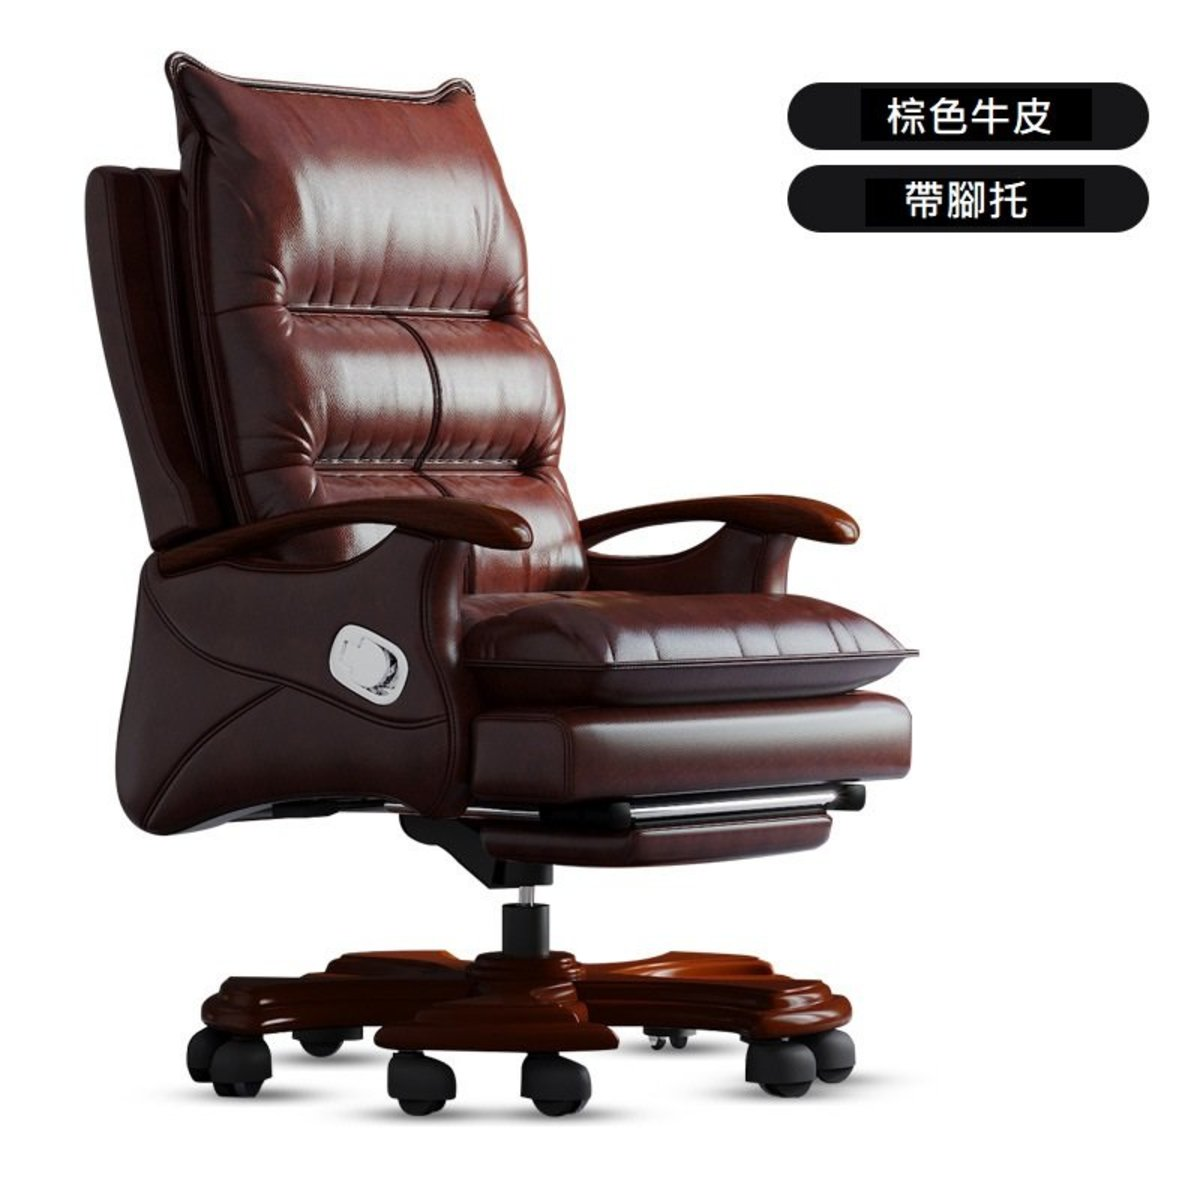 Reclining Leather & Hard Wood Office Chair B28 - Brown